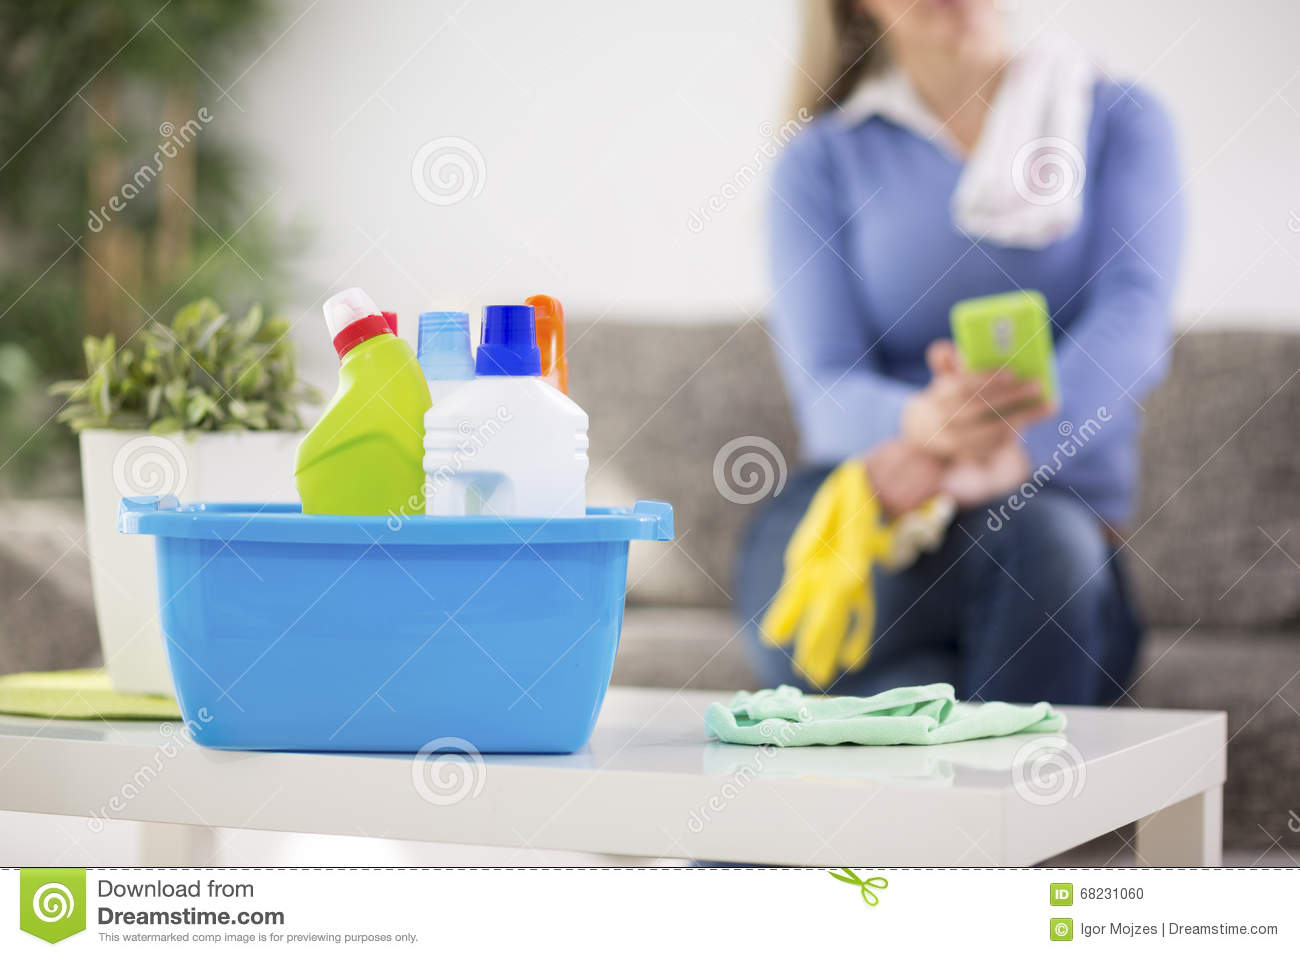 Cleaning products royalty free stock image cartoondealer for House cleaning stock photos